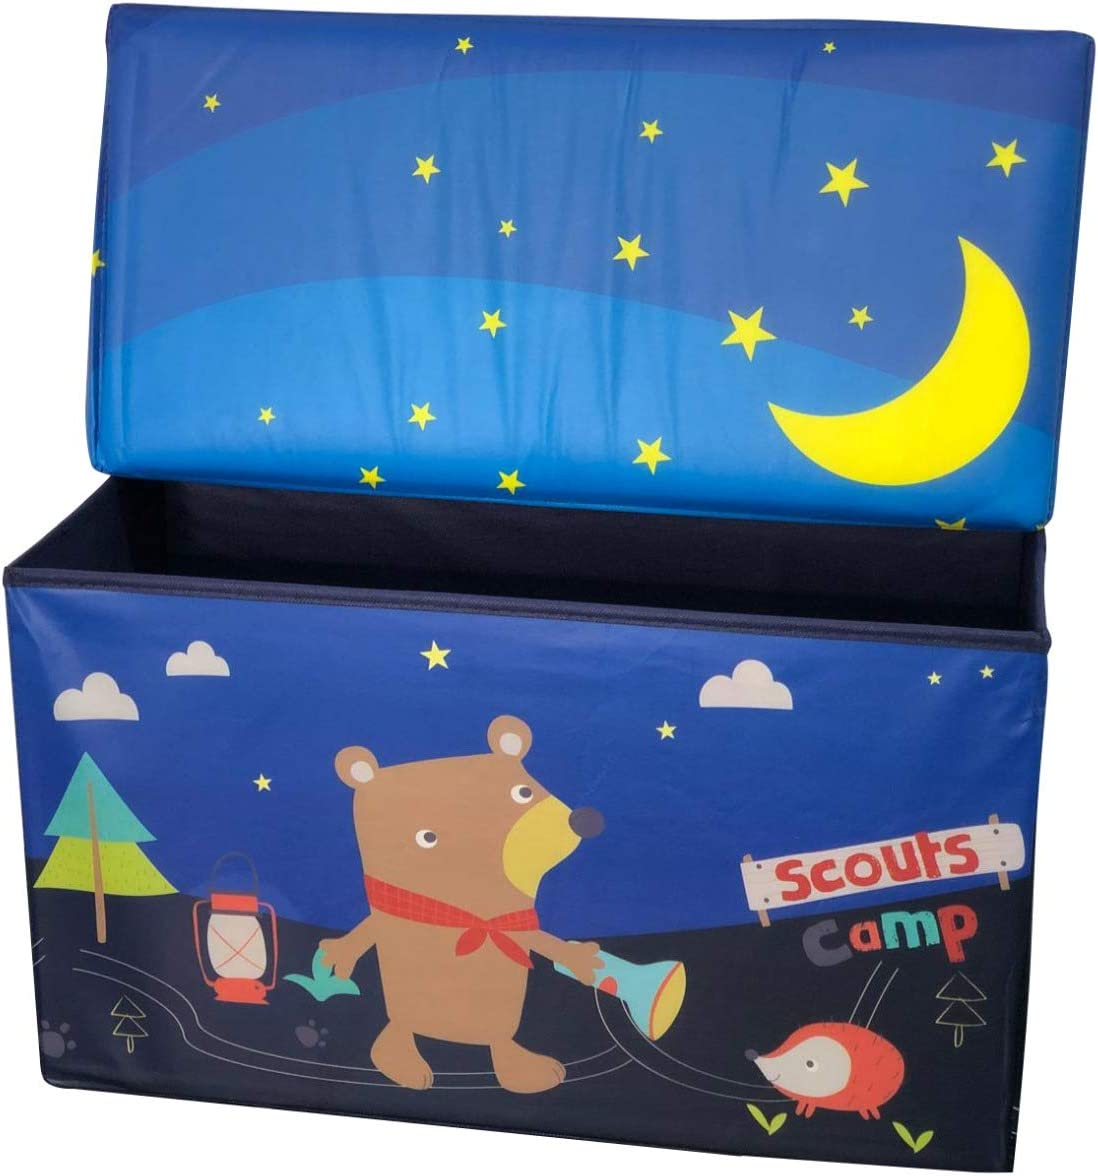 Doll Storage Stool Multifunctional Storage Stool Seat Bench Ottoman Box Organizer Kids Clothes Toy Chest Book Room Decoration